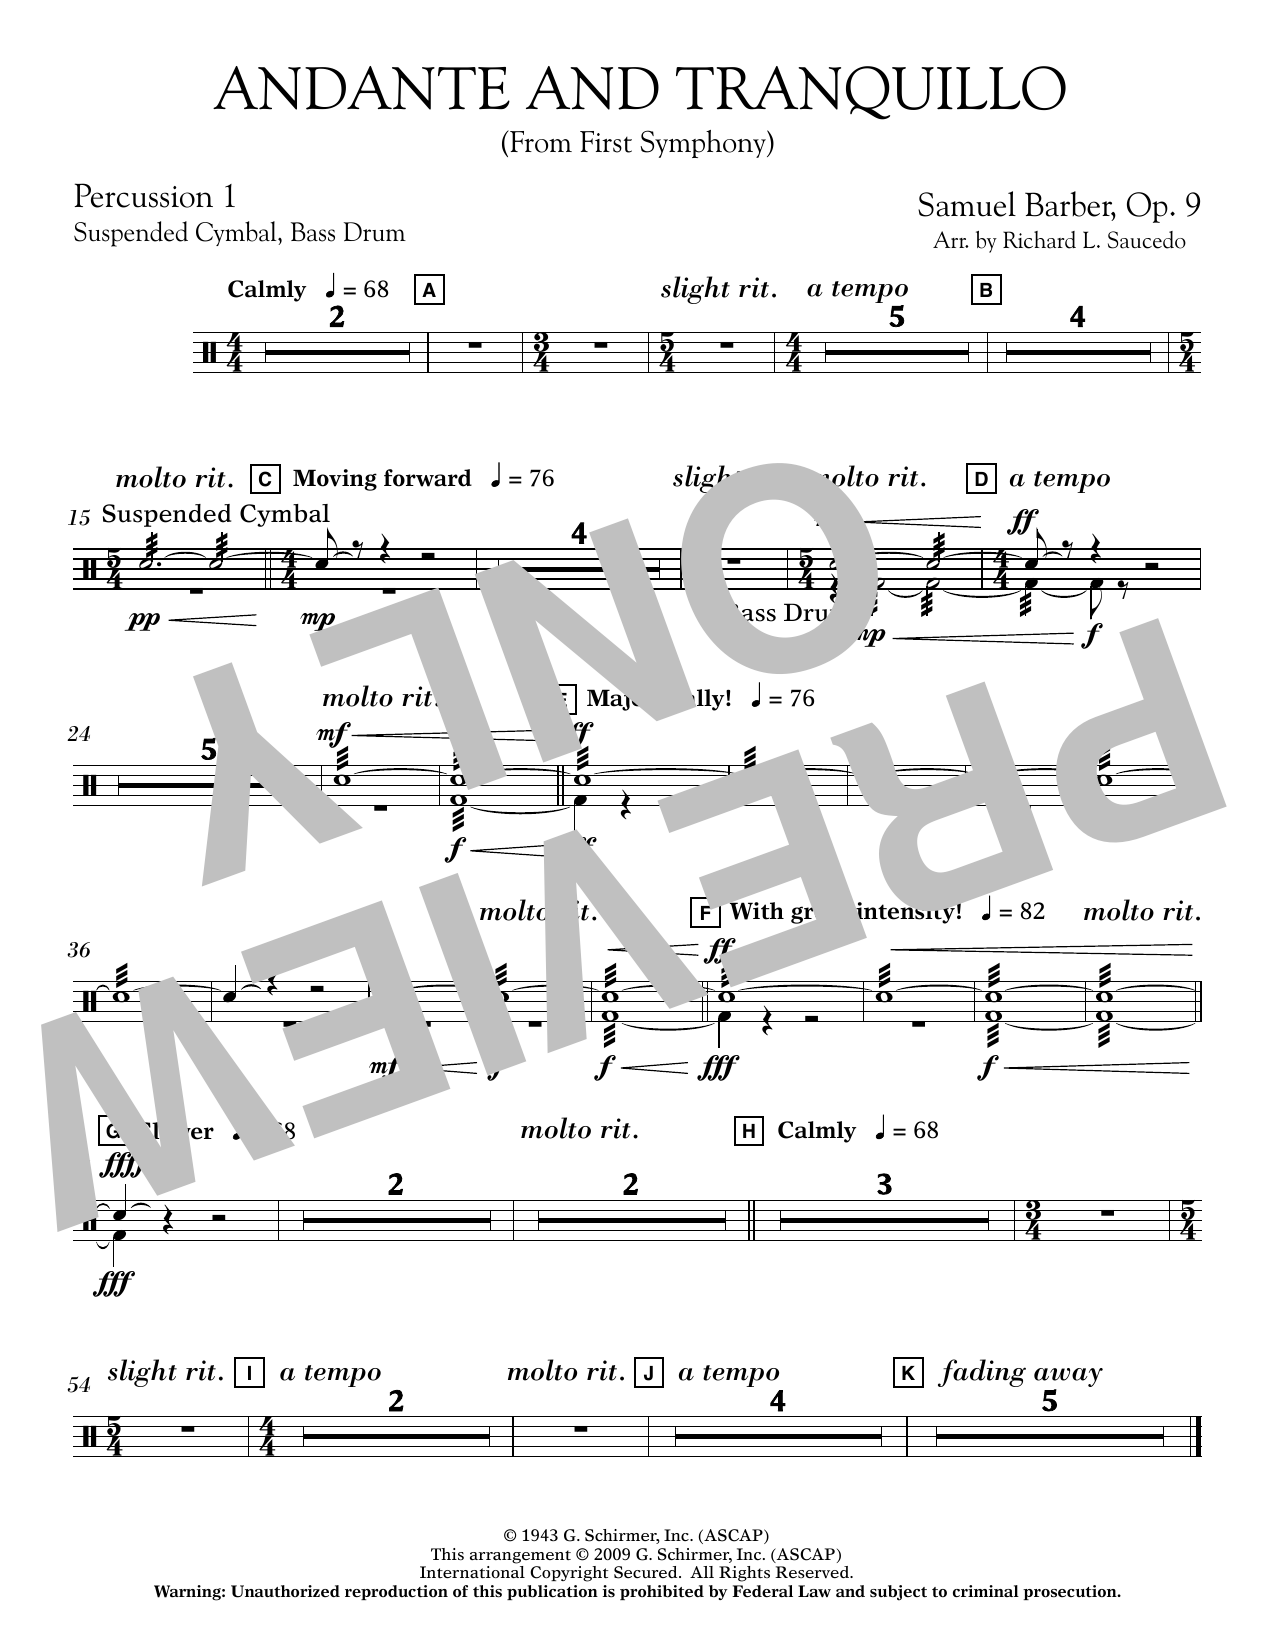 Andante and Tranquillo (from First Symphony) - Percussion 1 Sheet Music